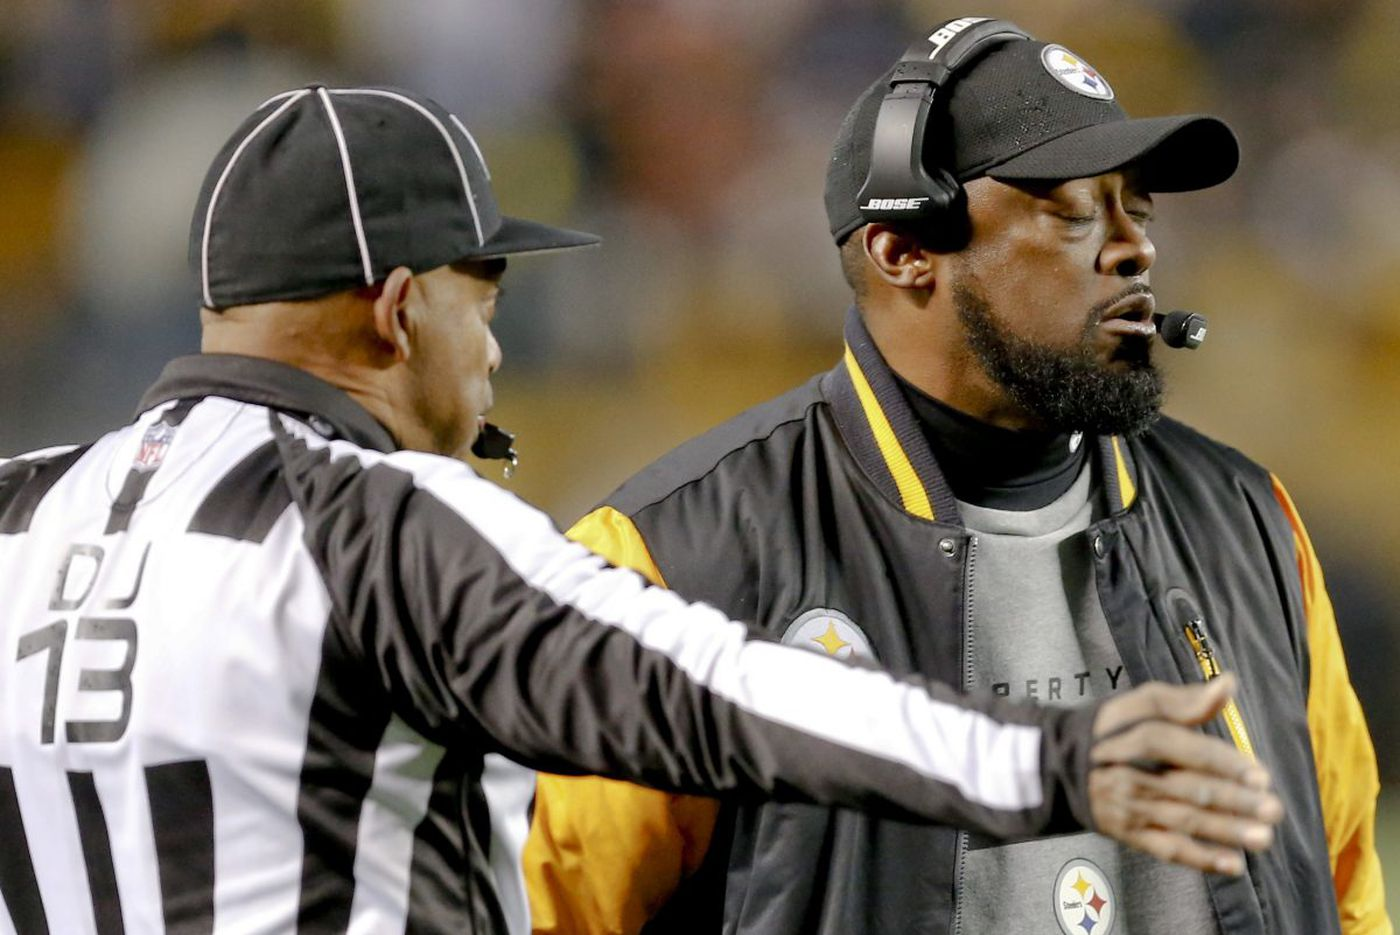 NFL catch rule: No easy answer for angry Steelers fans or anyone else | Bob Brookover